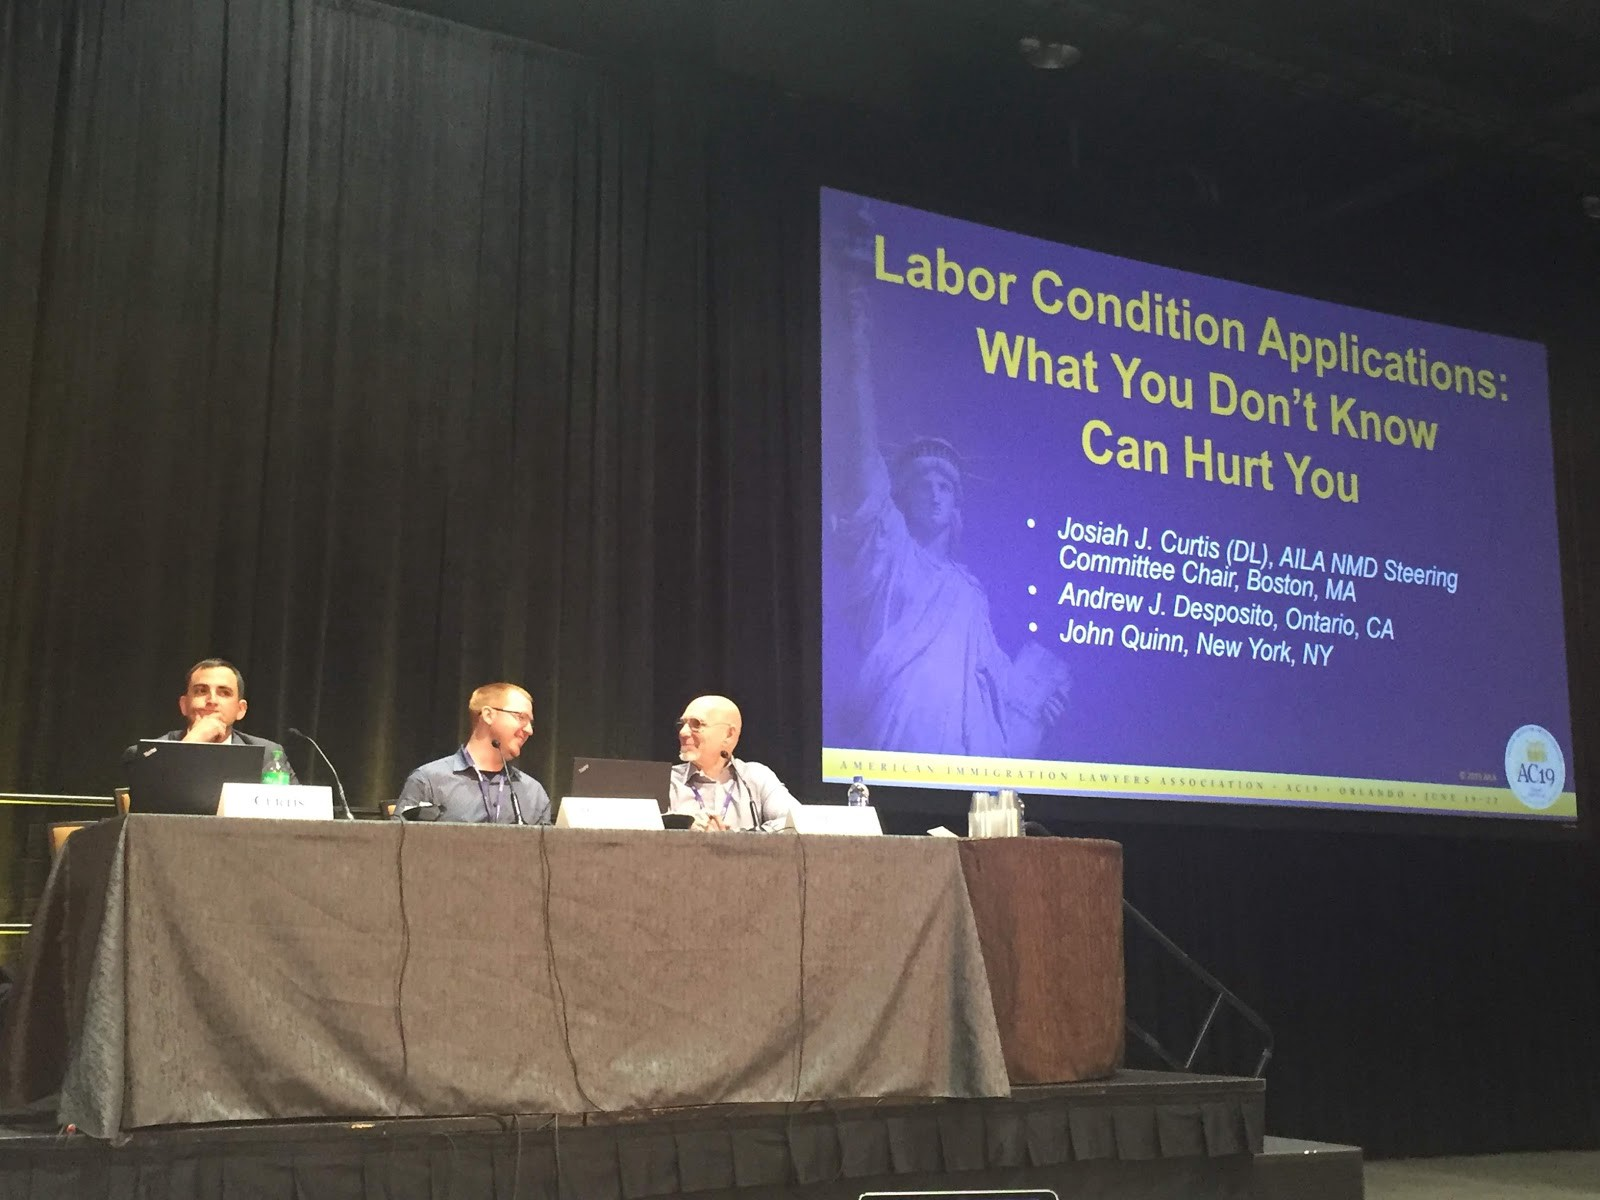 What I Learned About the Labor Condition Application at AILA